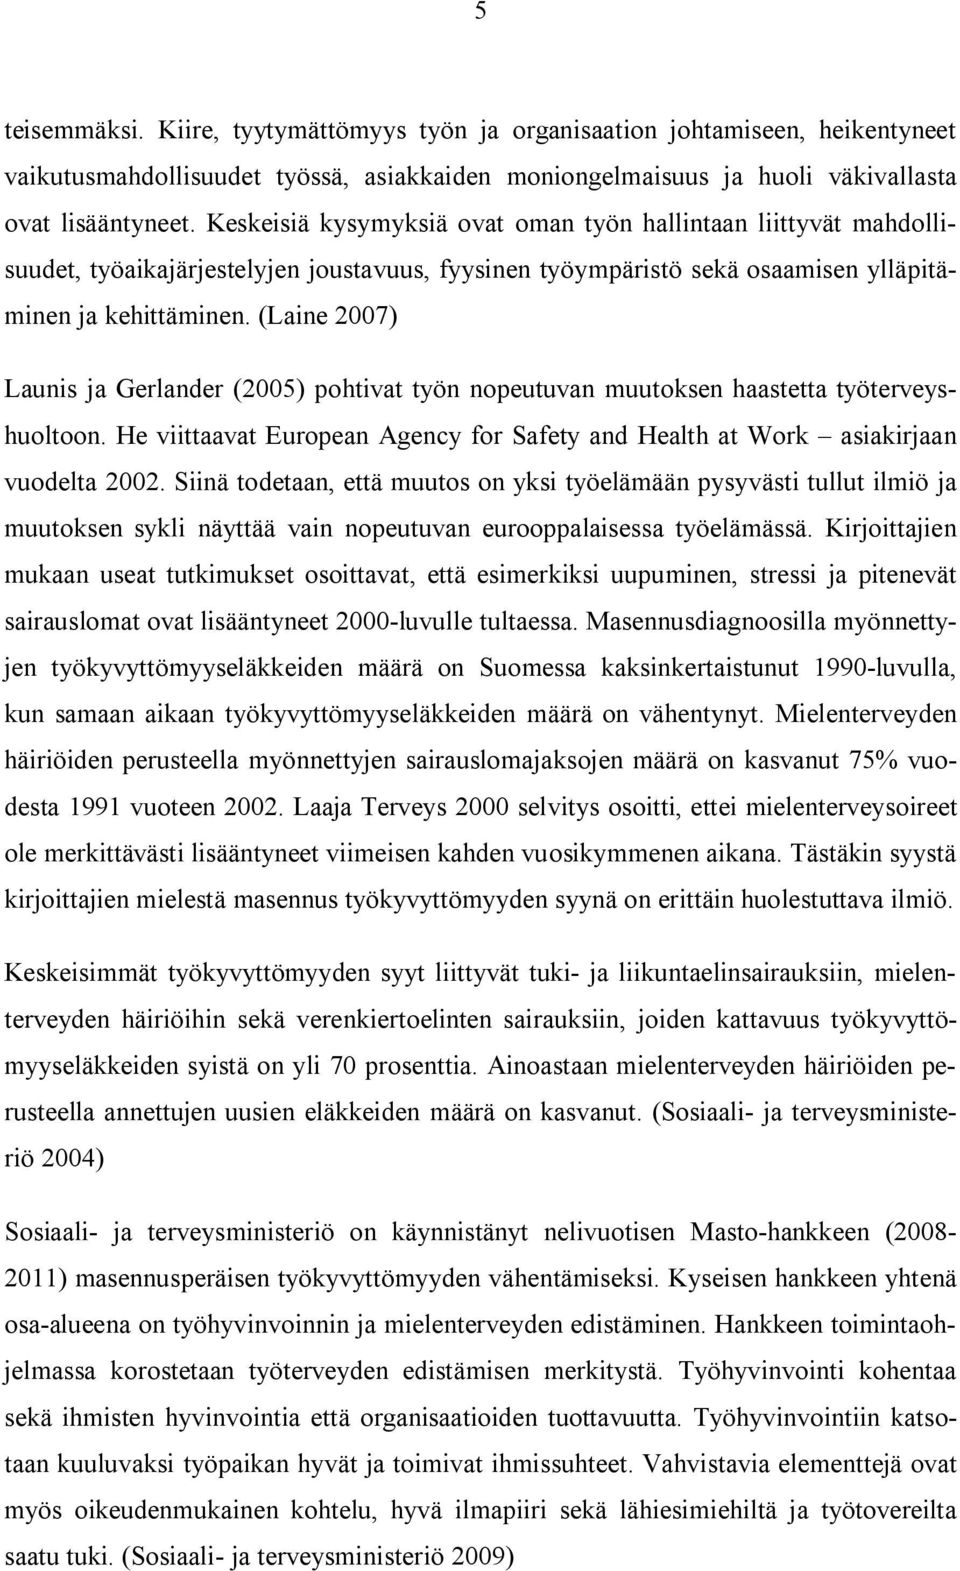 (Laine 2007) Launis ja Gerlander (2005) pohtivat työn nopeutuvan muutoksen haastetta työterveyshuoltoon. He viittaavat European Agency for Safety and Health at Work asiakirjaan vuodelta 2002.